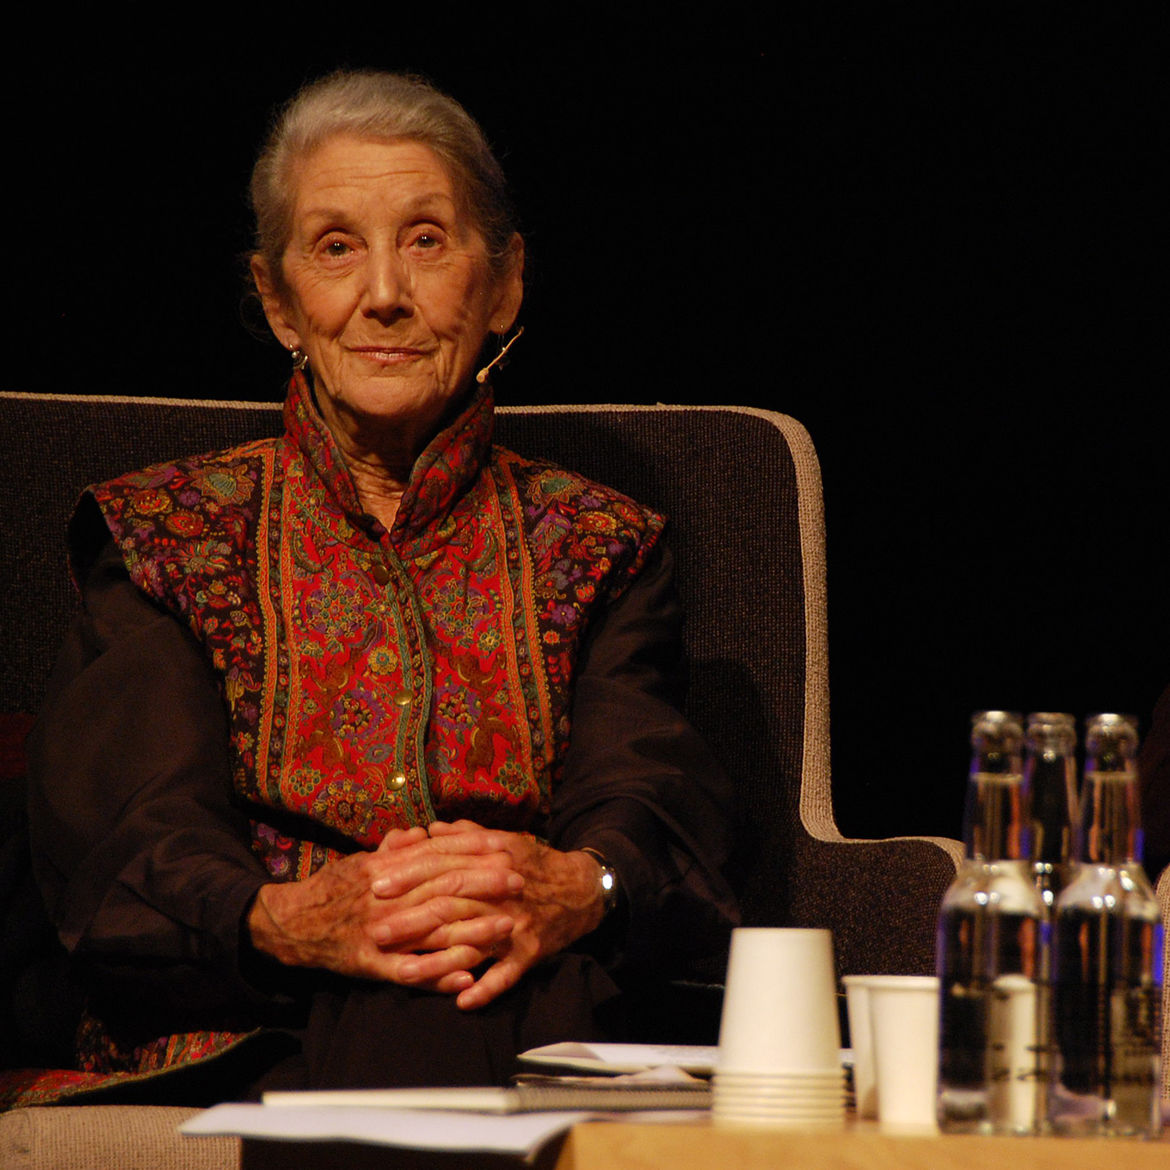 Cover Photo: Nadine Gordimer. Photo by Lärarnas Nyheter/flickr